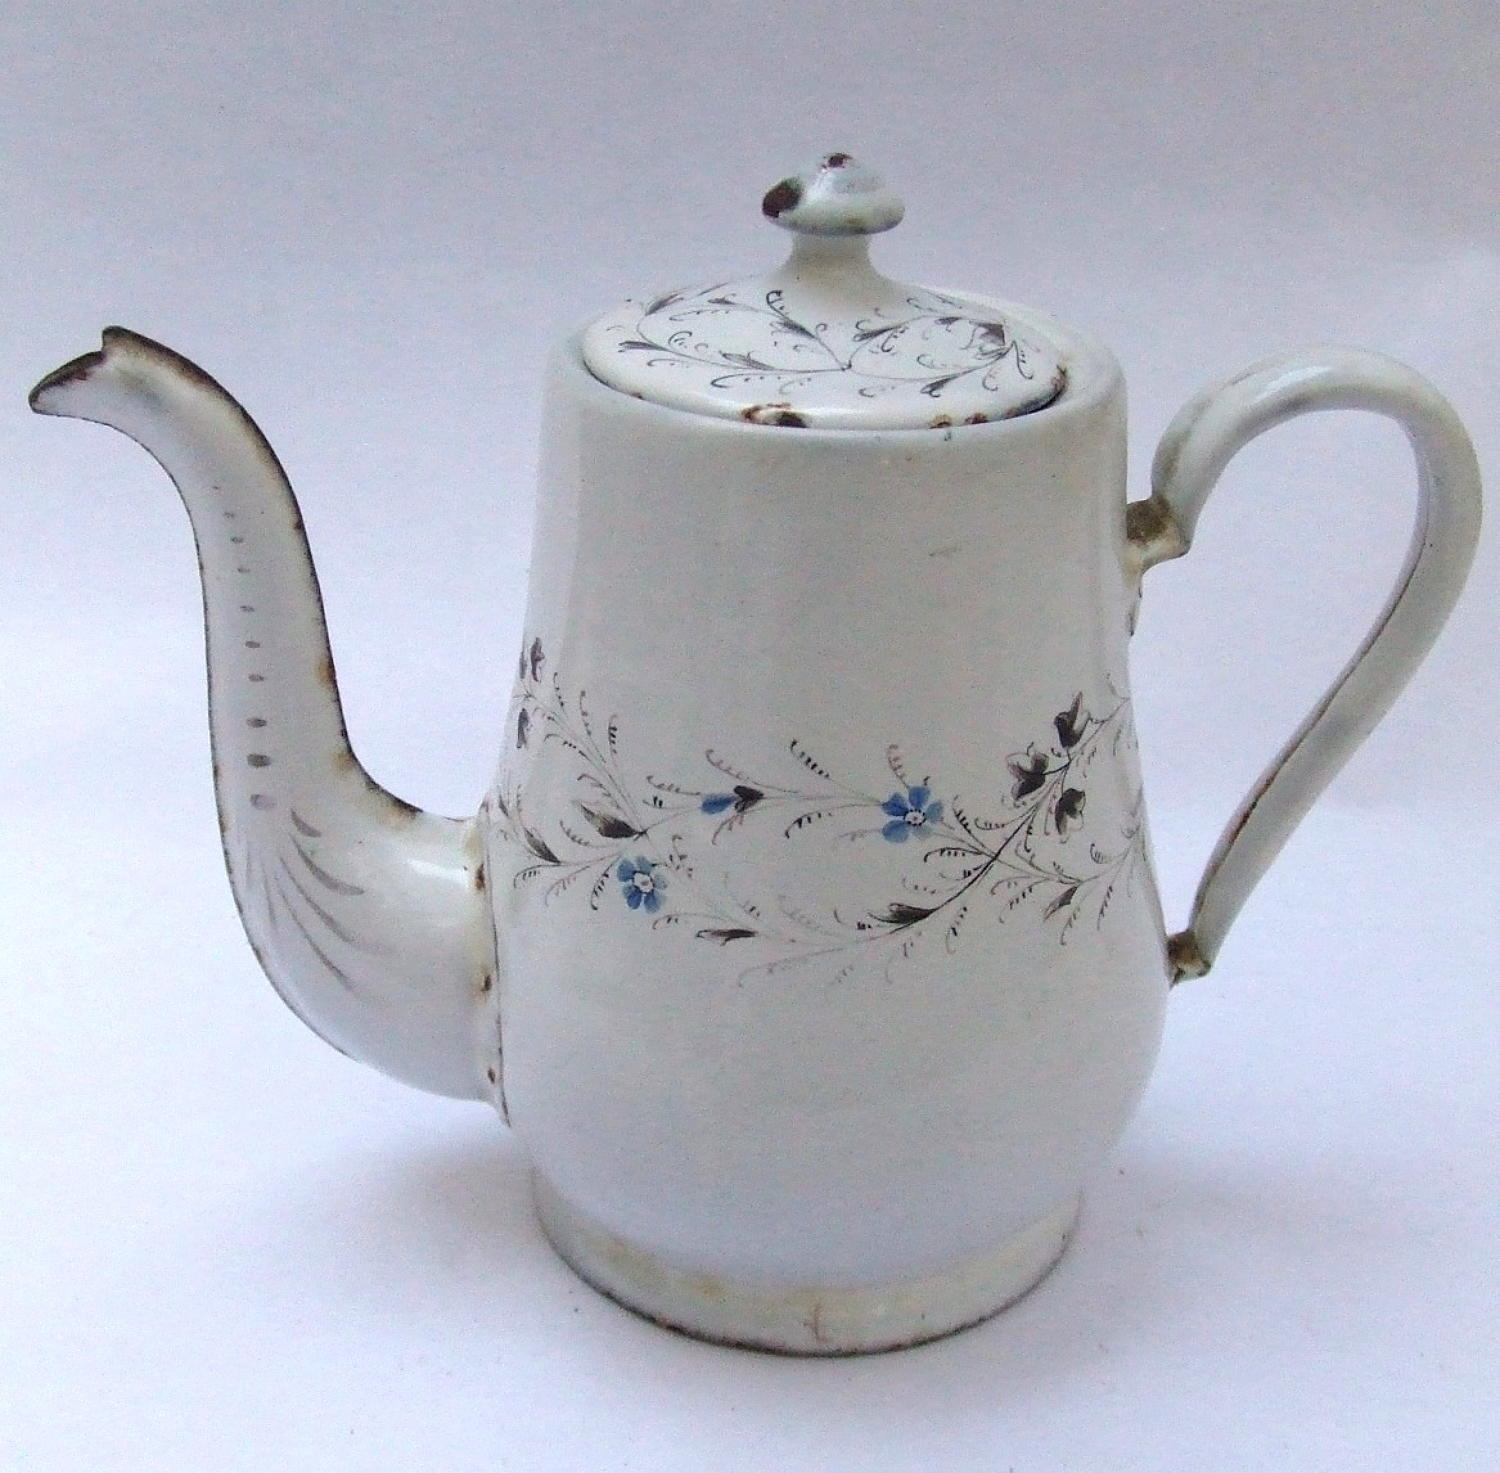 Antique Hand Painted French Enamel Coffee Pot